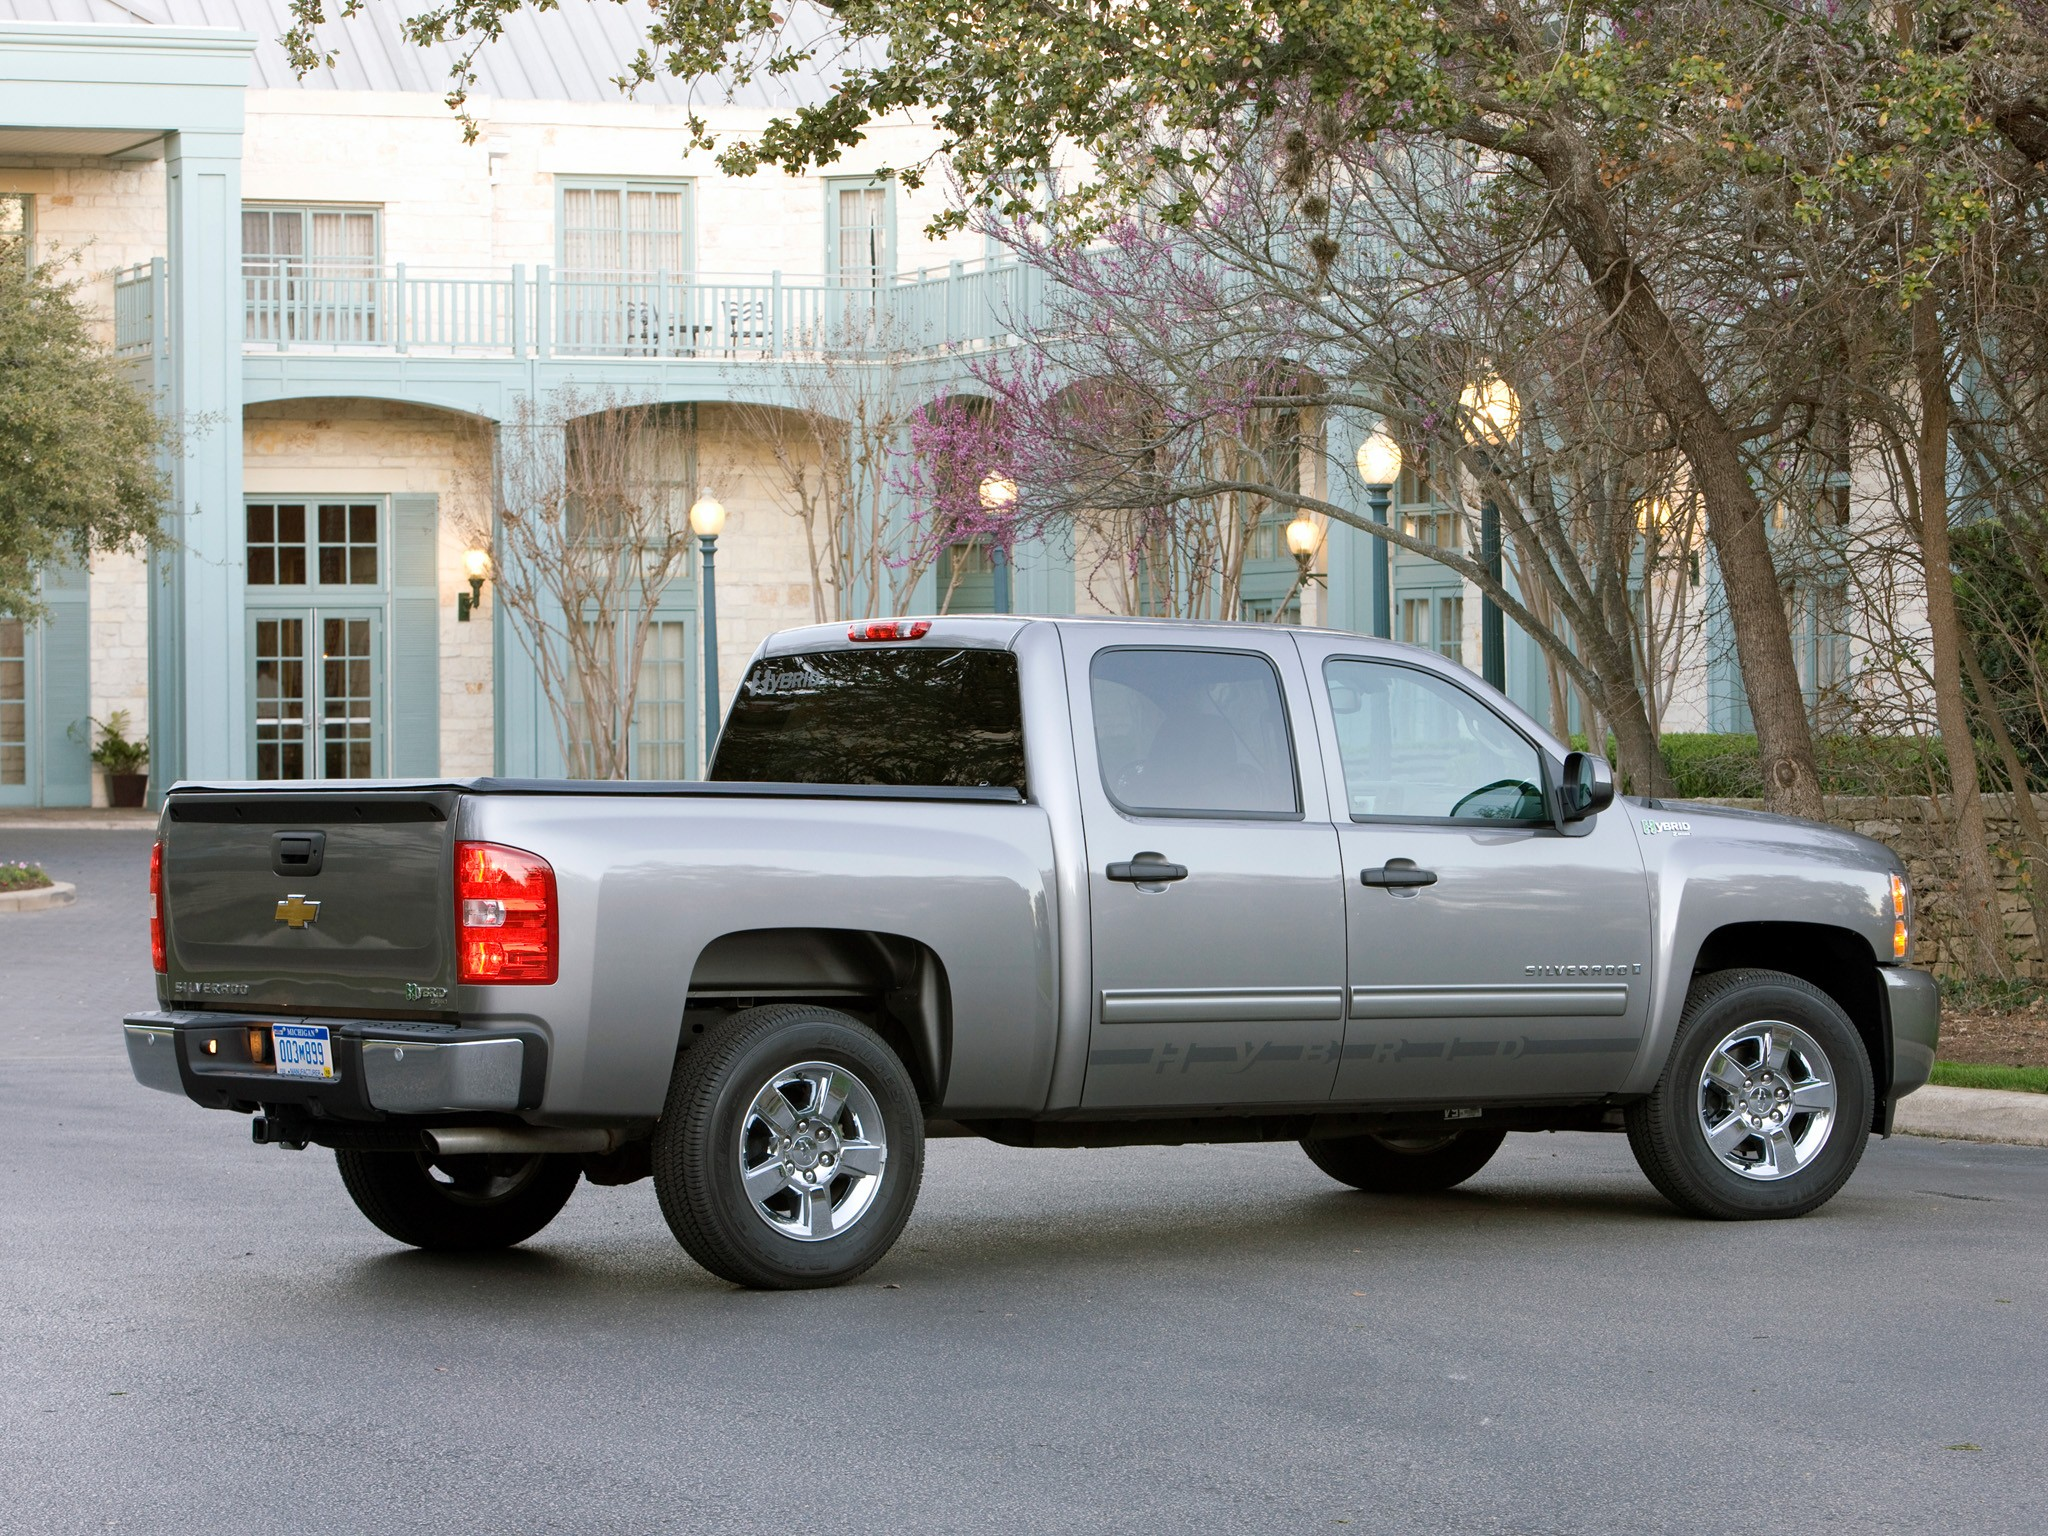 chevrolet silverado hybrid 2008 2009 2010 2011 2012 2013 autoevolution. Black Bedroom Furniture Sets. Home Design Ideas